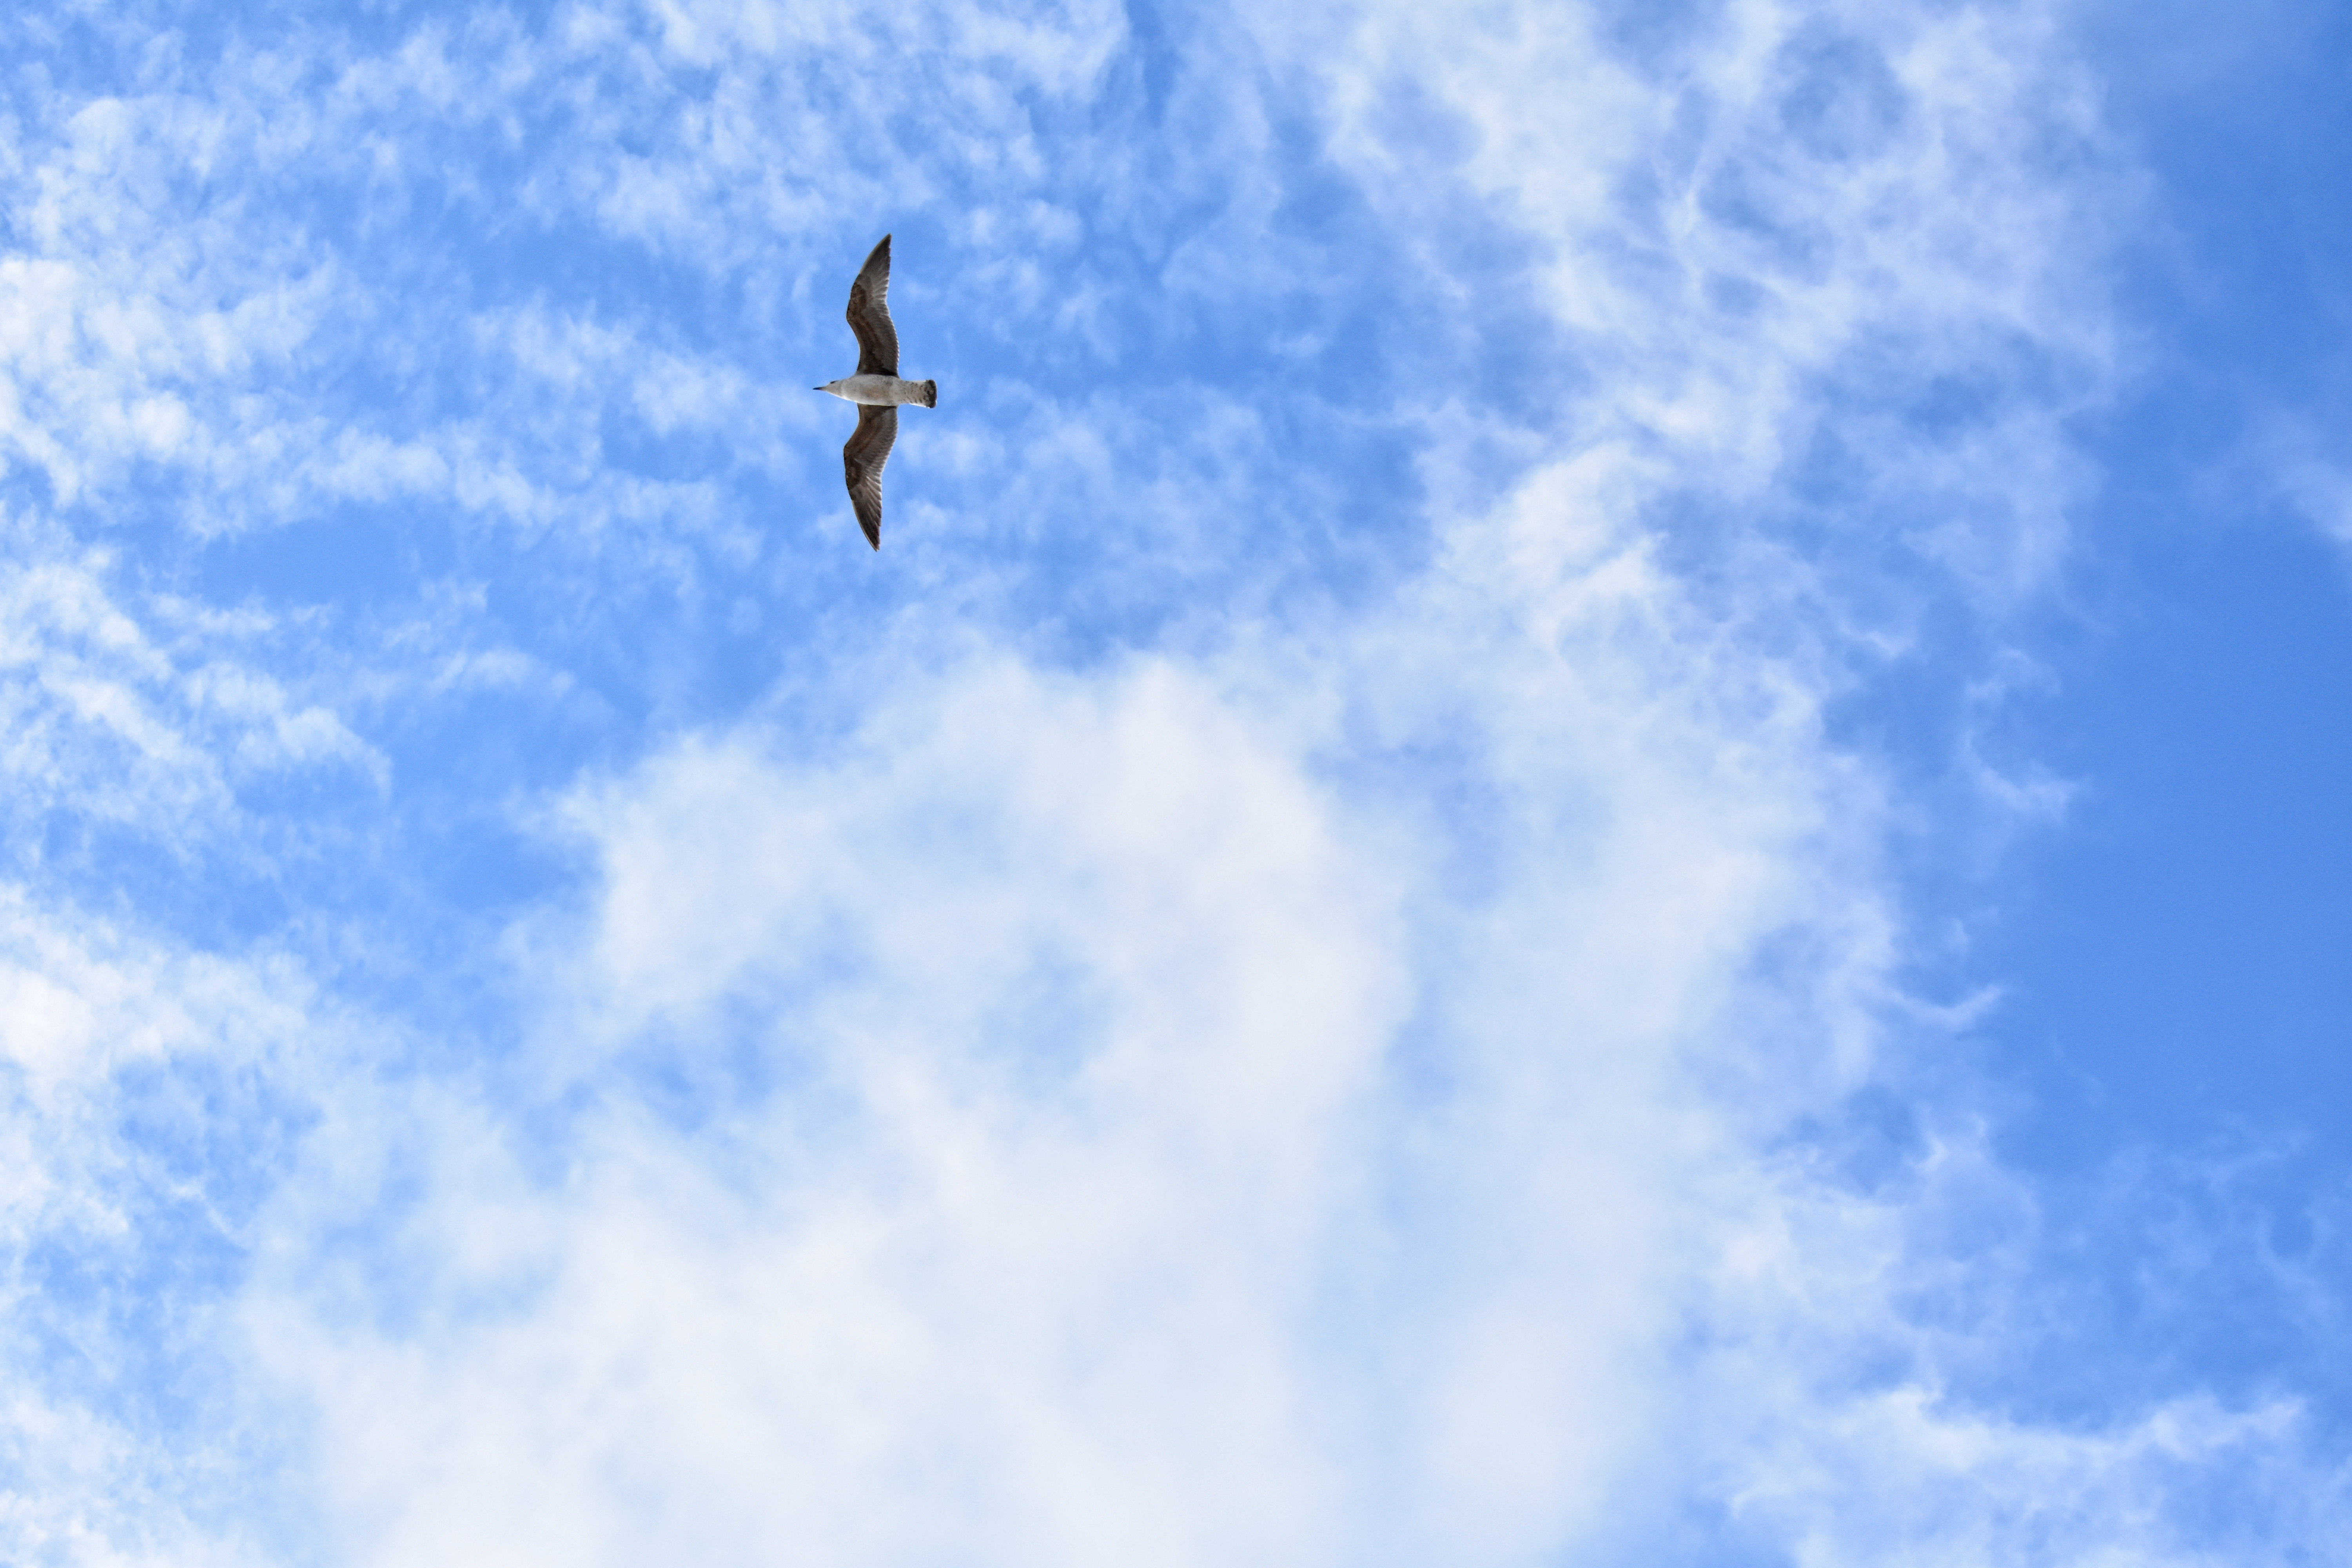 131891 download wallpaper Minimalism, Gull, Seagull, Flight screensavers and pictures for free